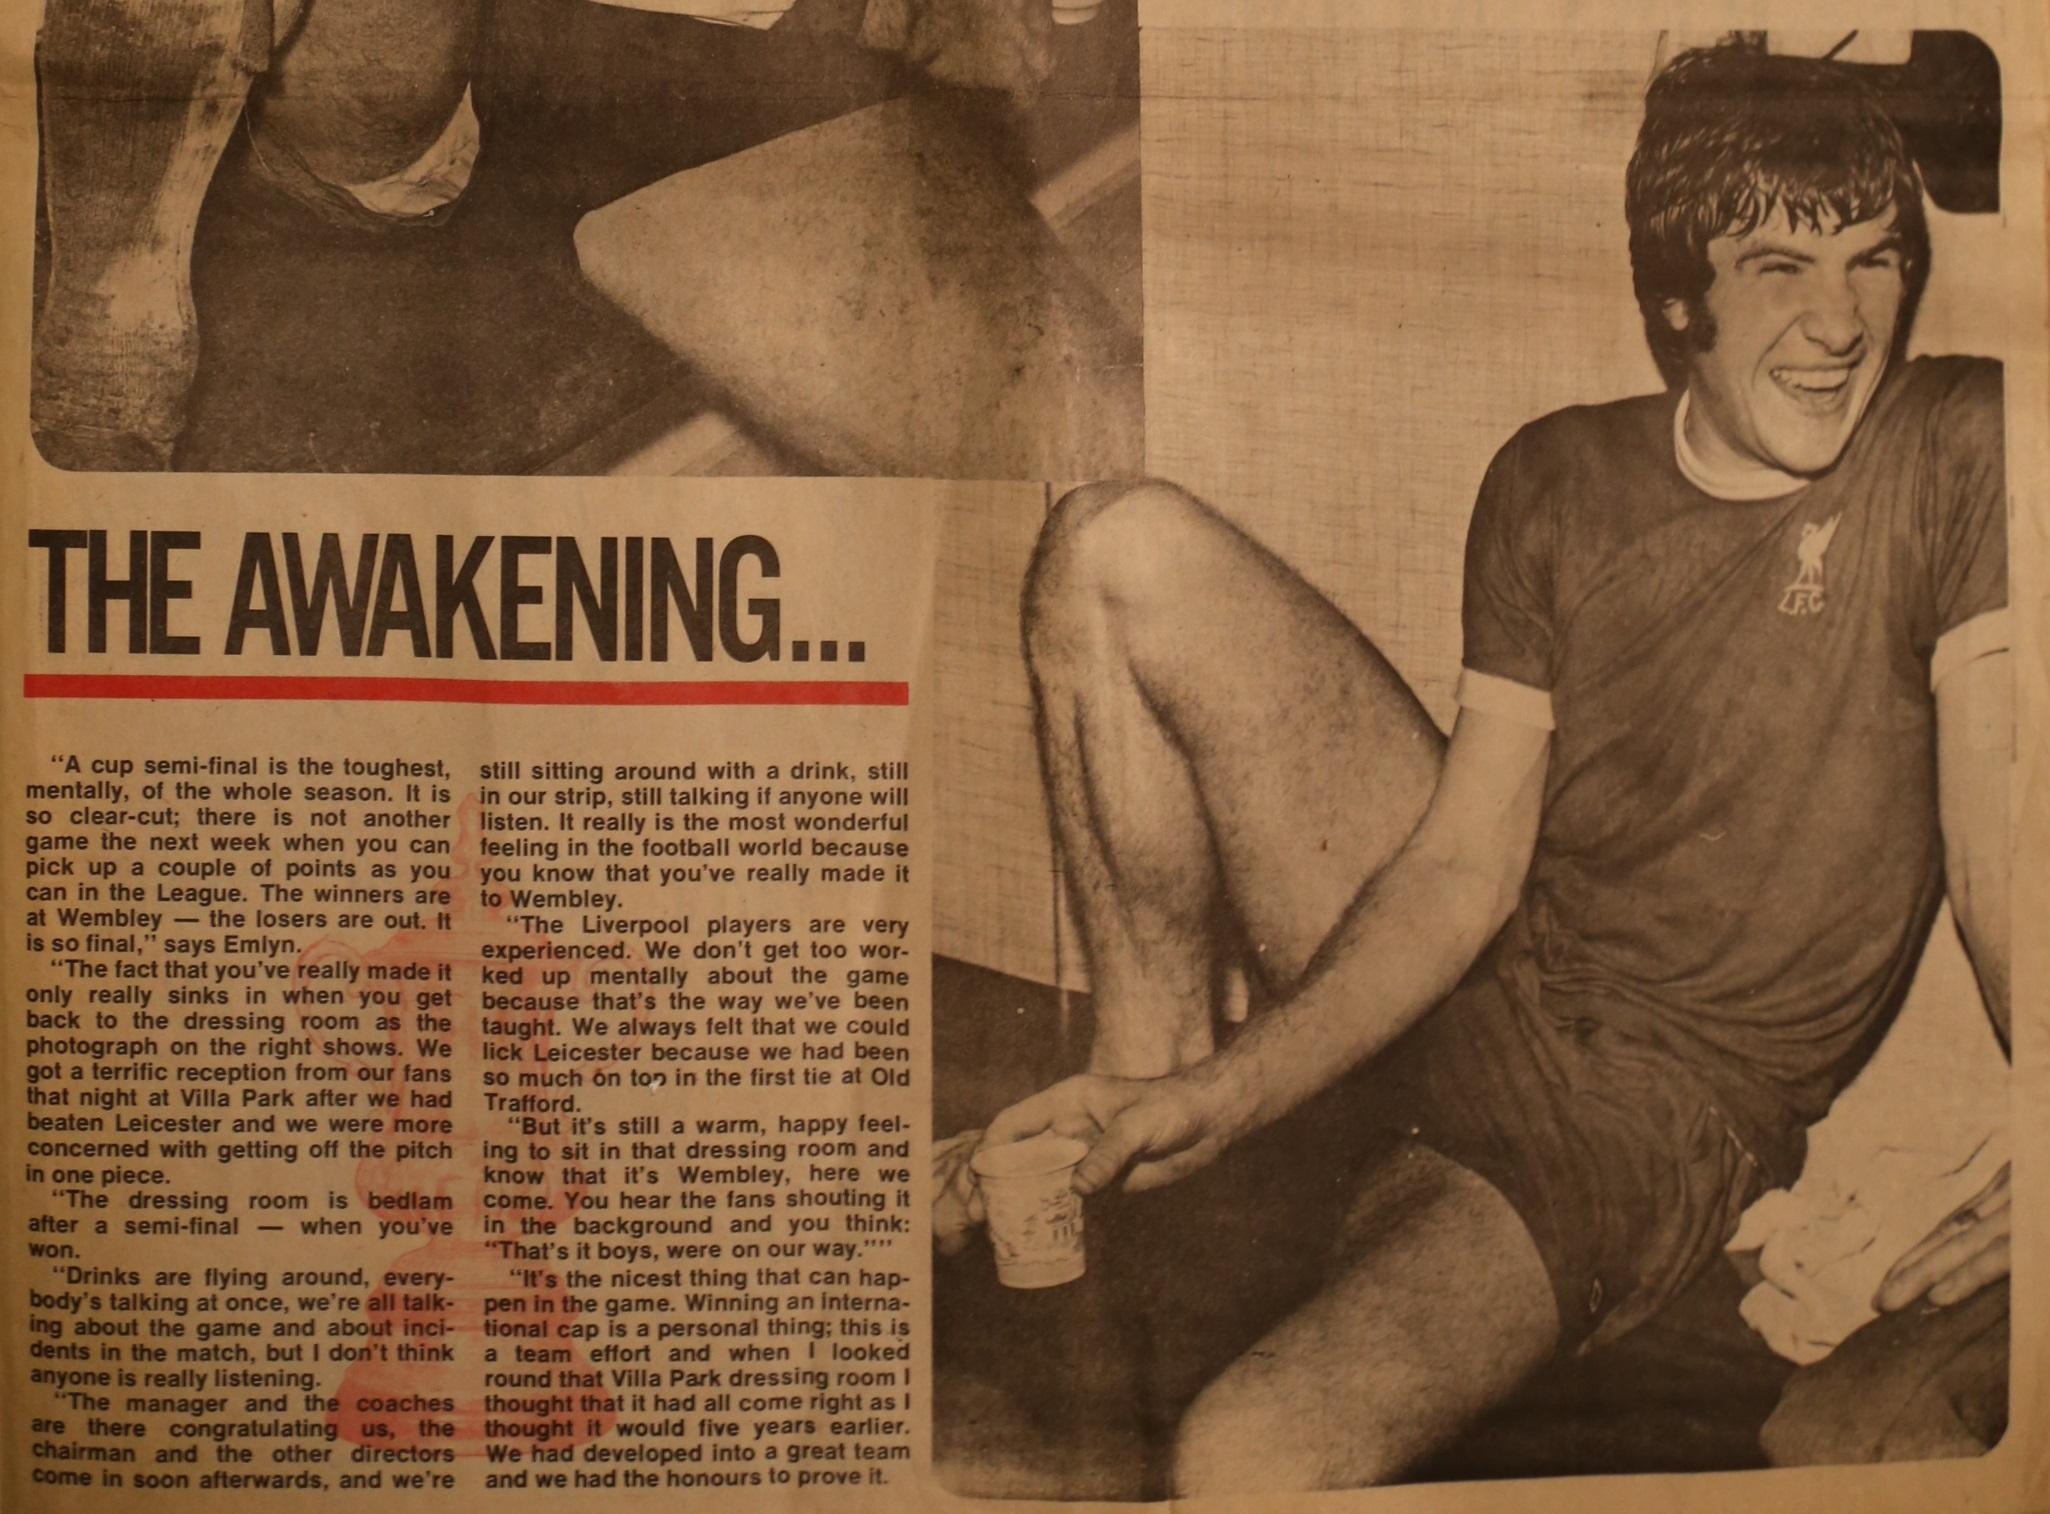 The awakening by Emlyn Hughes - 3 April 1974